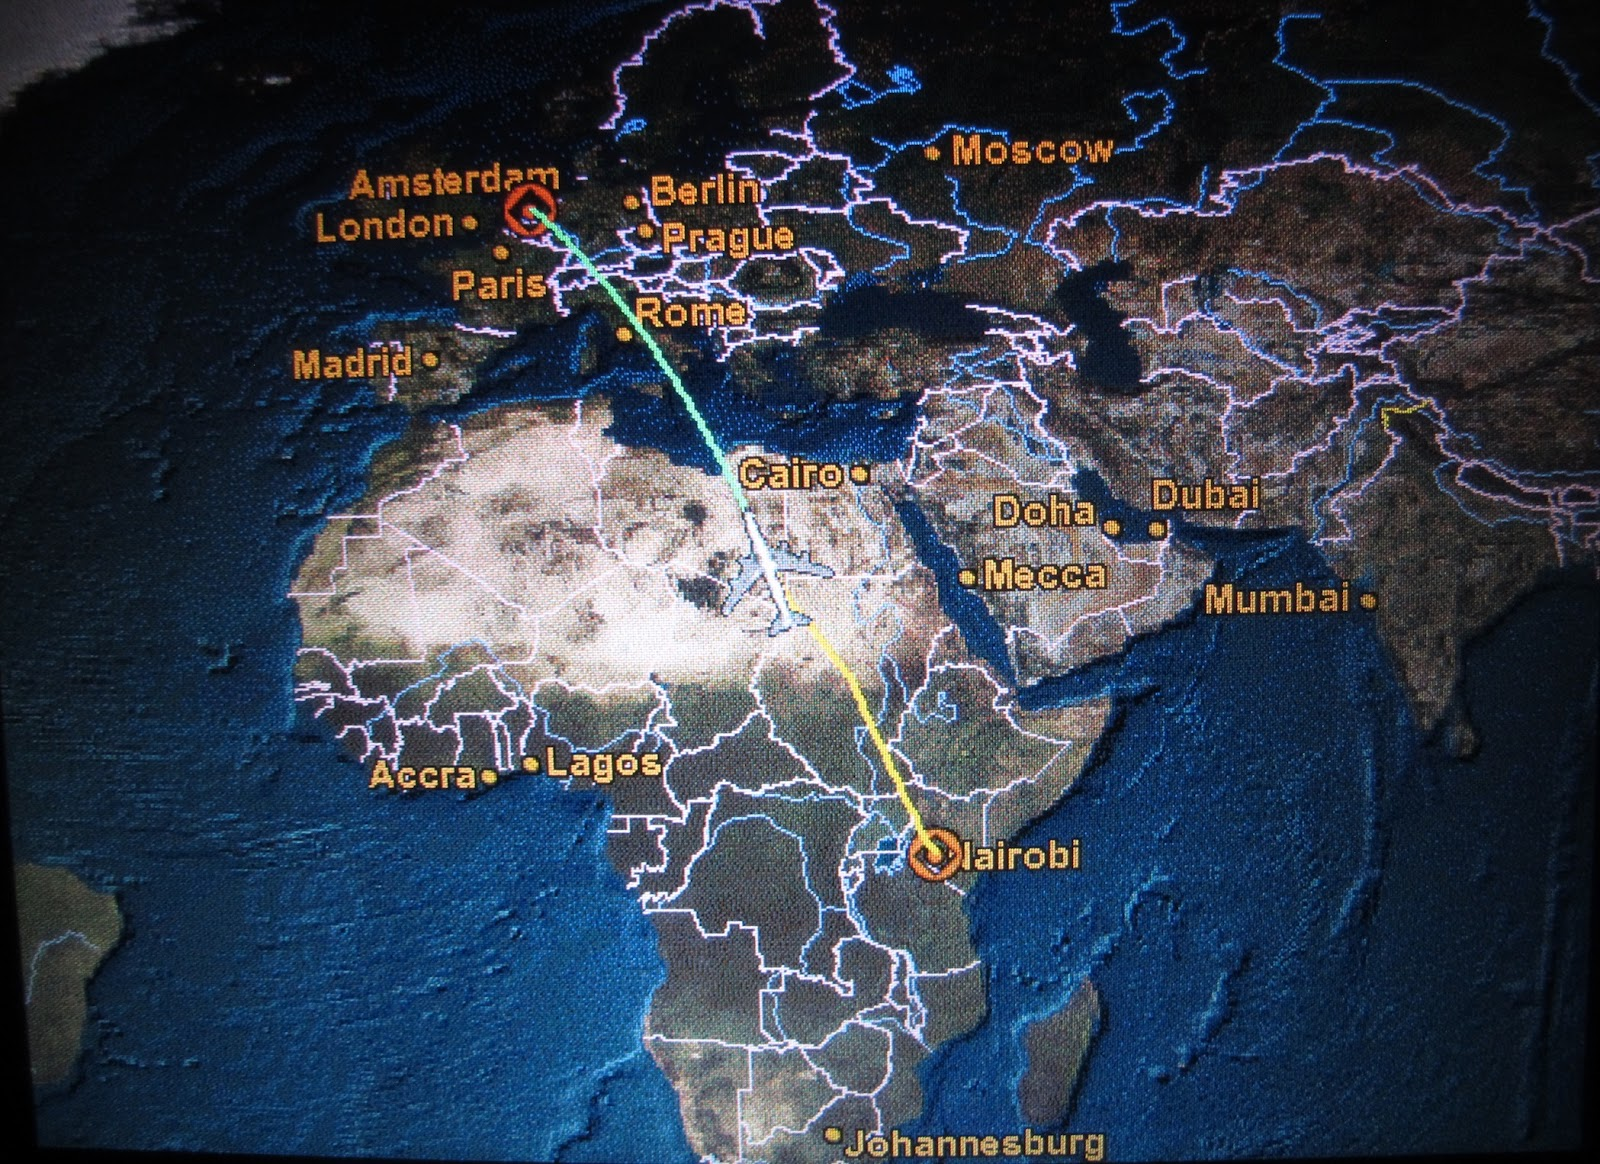 The Timetablist: KLM: Nairobi to Amsterdam, April 30, 2013 on malaysia airlines destinations, cargolux route map, envoy air route map, royal jordan route map, air france route map, saudia route map, aegean route map, china eastern route map, alitalia route map, klm cityhopper, ba cityflyer route map, air macau route map, key lime air route map, air niugini route map, delta air lines destinations, air france-klm, iberia destinations, independence air route map, cityjet route map, luxair route map, klm royal dutch airlines, cathay pacific destinations, island air route map, biman route map, eastern air lines route map, tap air portugal route map,